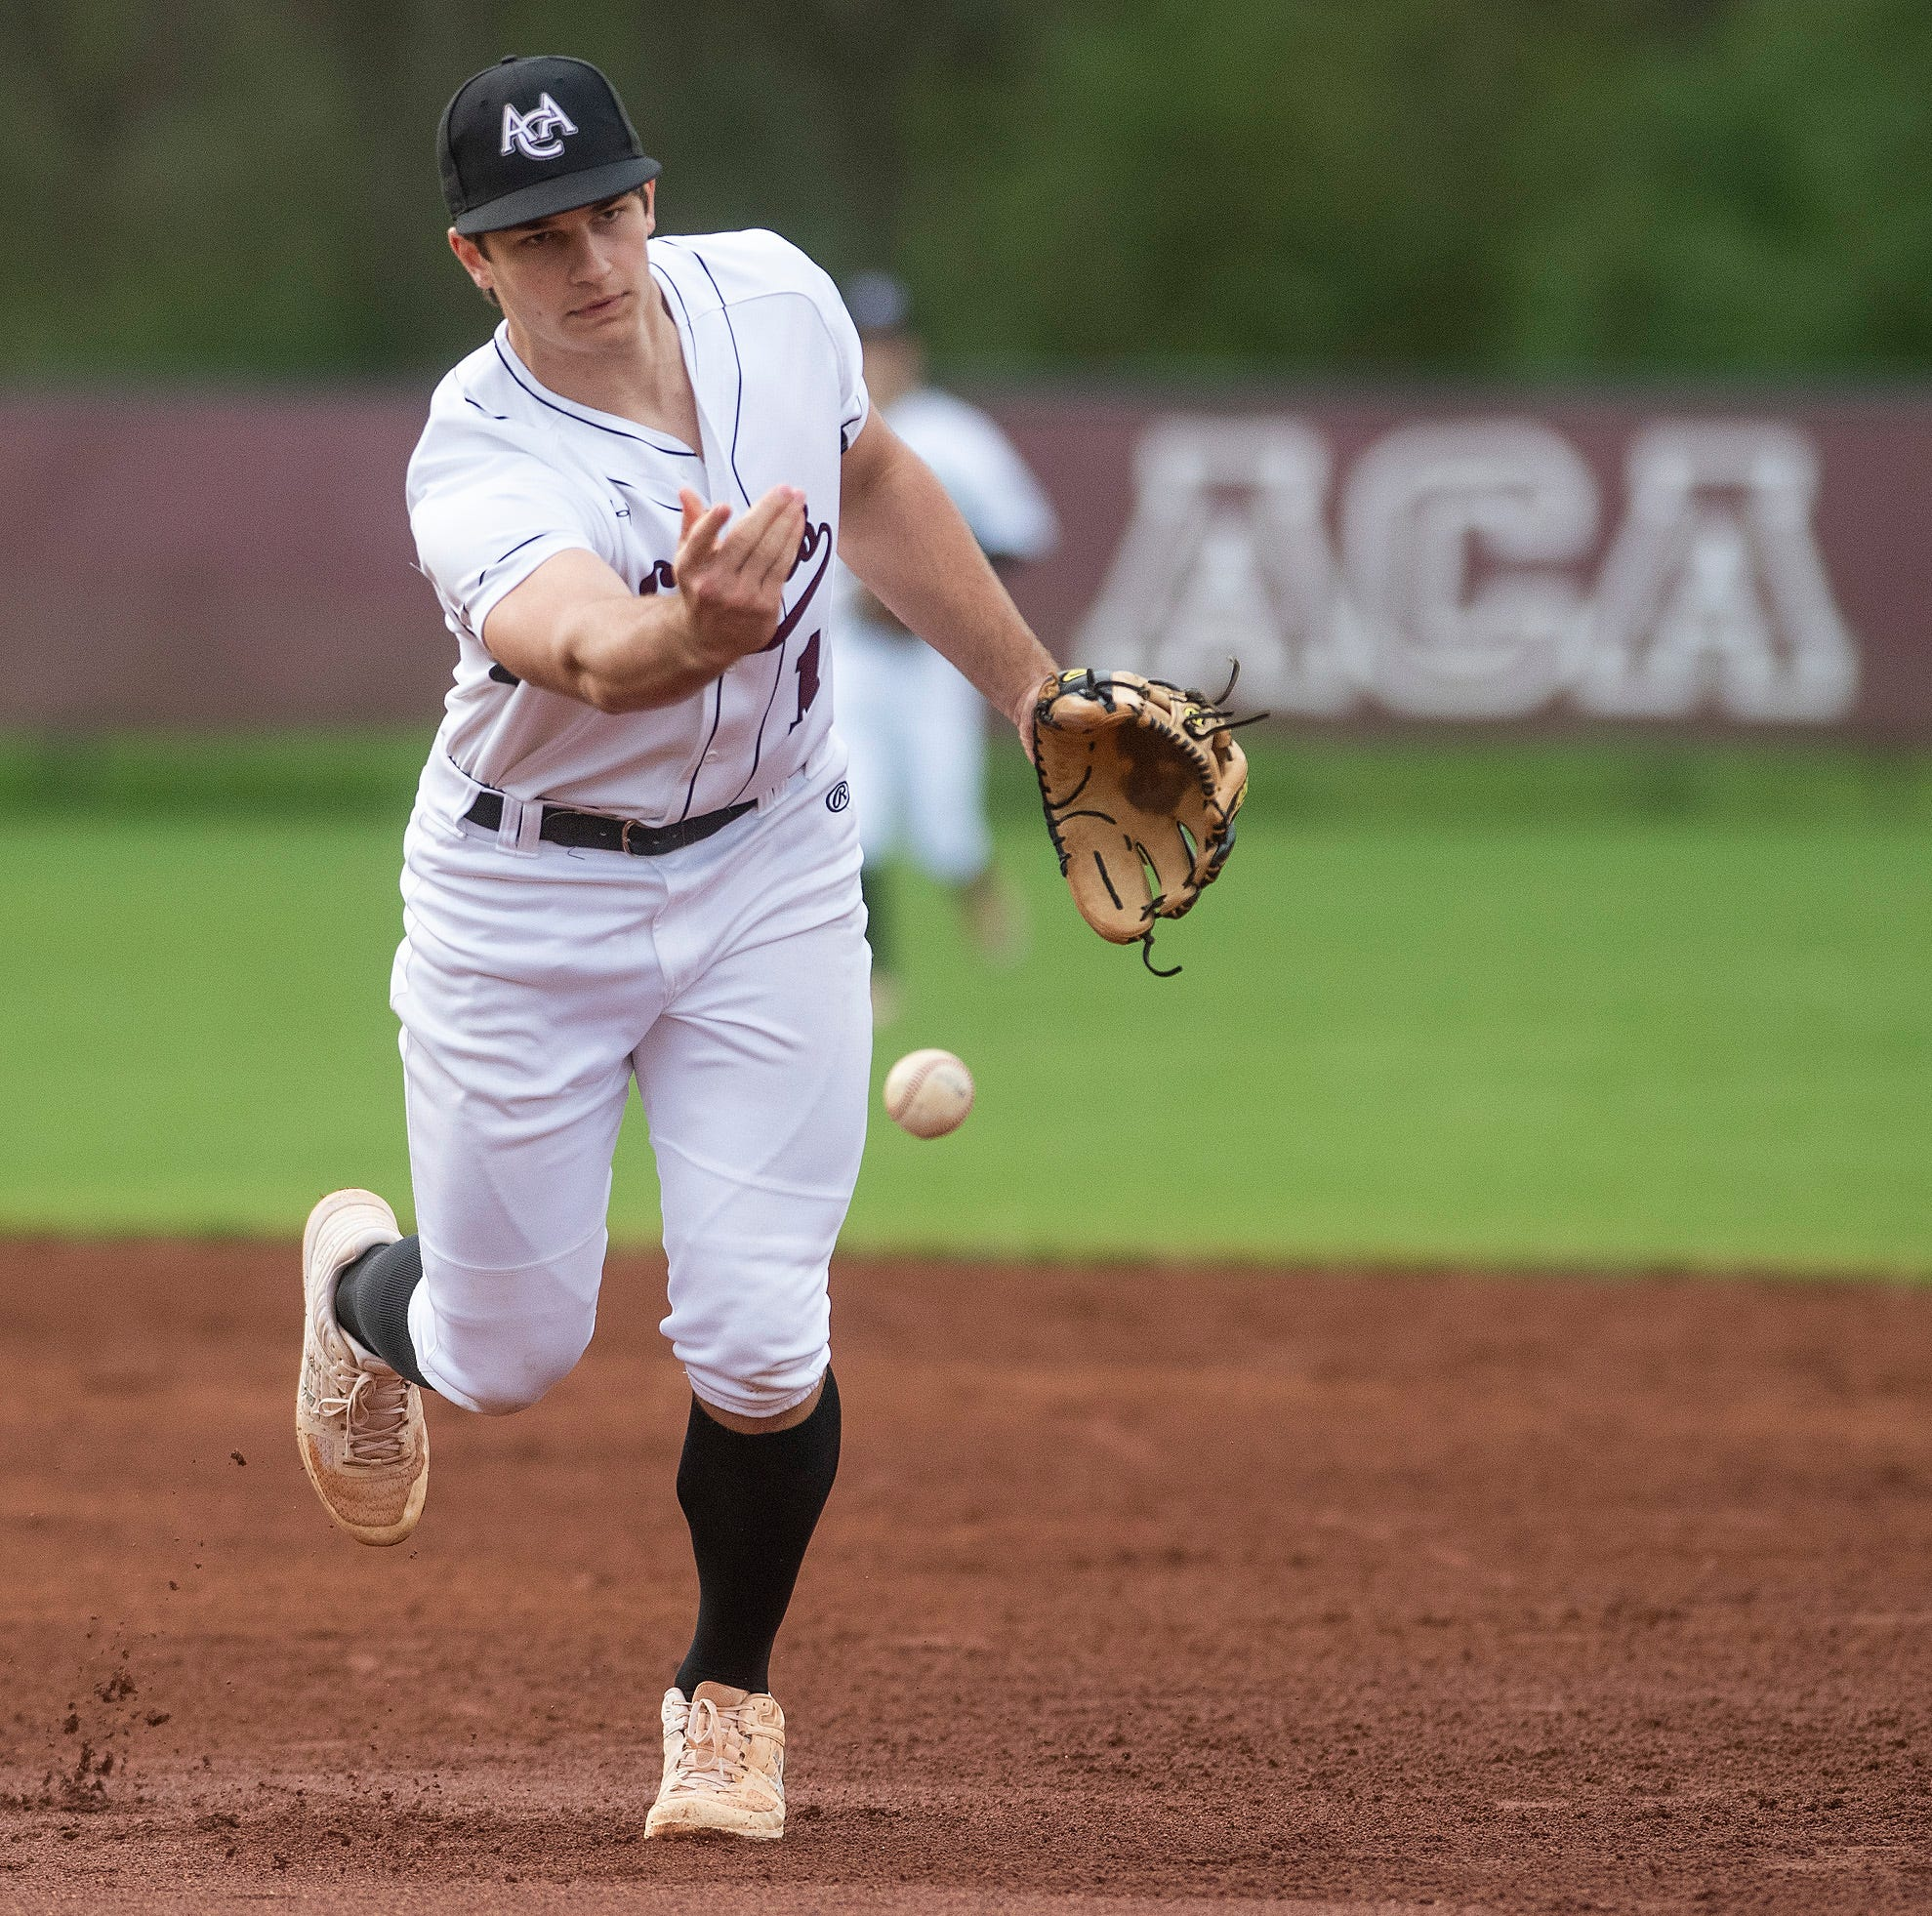 Alabama Christian Academy's Reece Solar tosses the ball to first against Prattville Christian Academy In Montgomery, Ala., on Friday March 15, 2019.